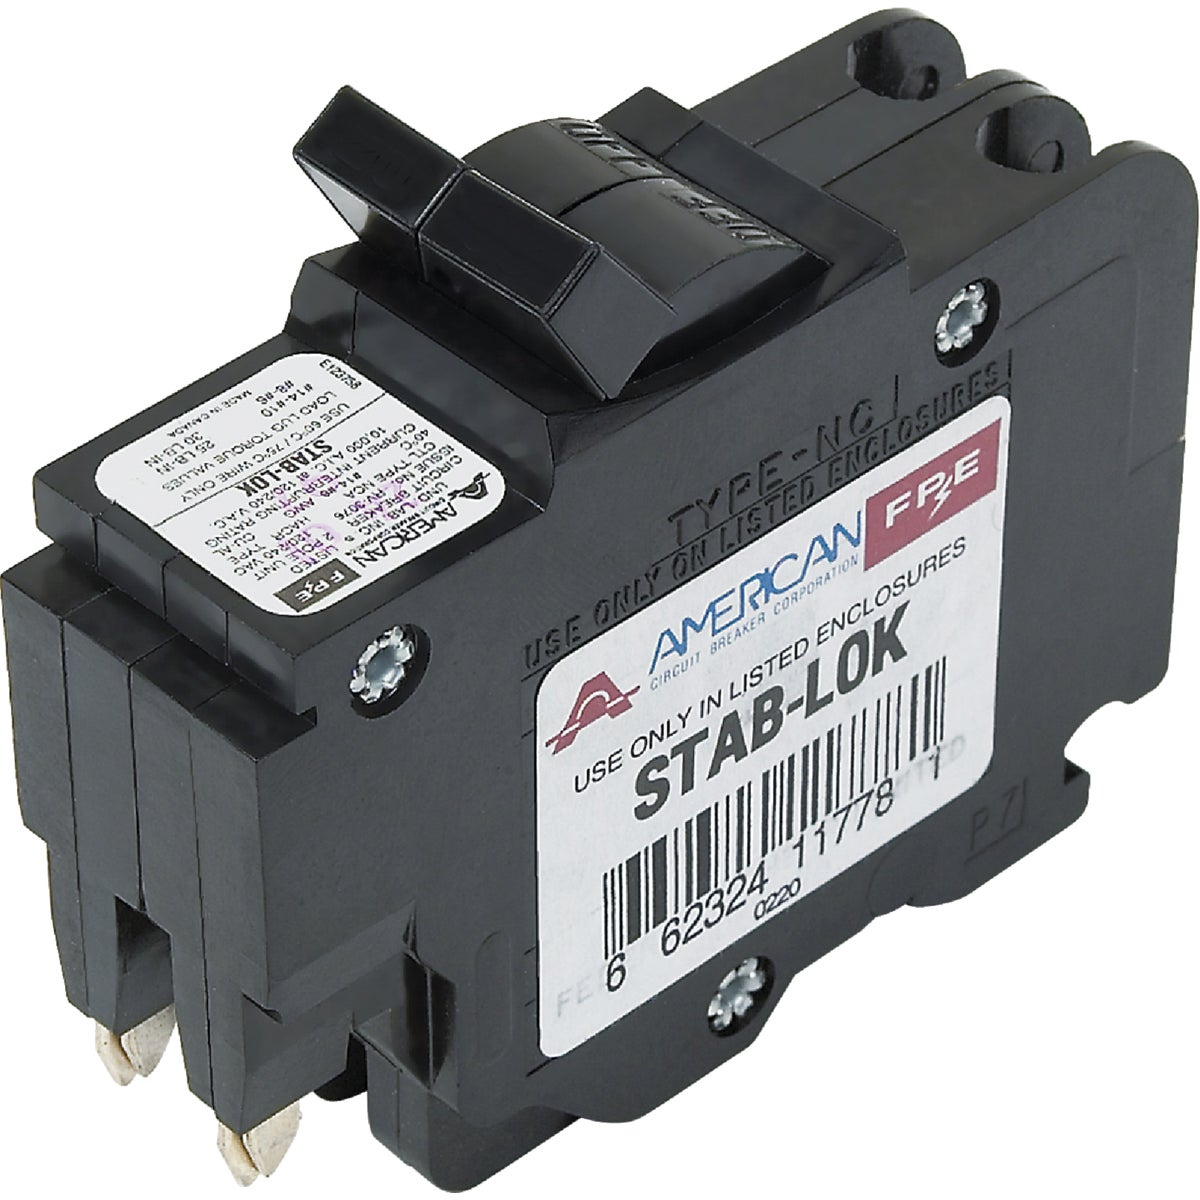 50A 2P CIRCUIT BREAKER - UBIF0250N by Connecticut Electric